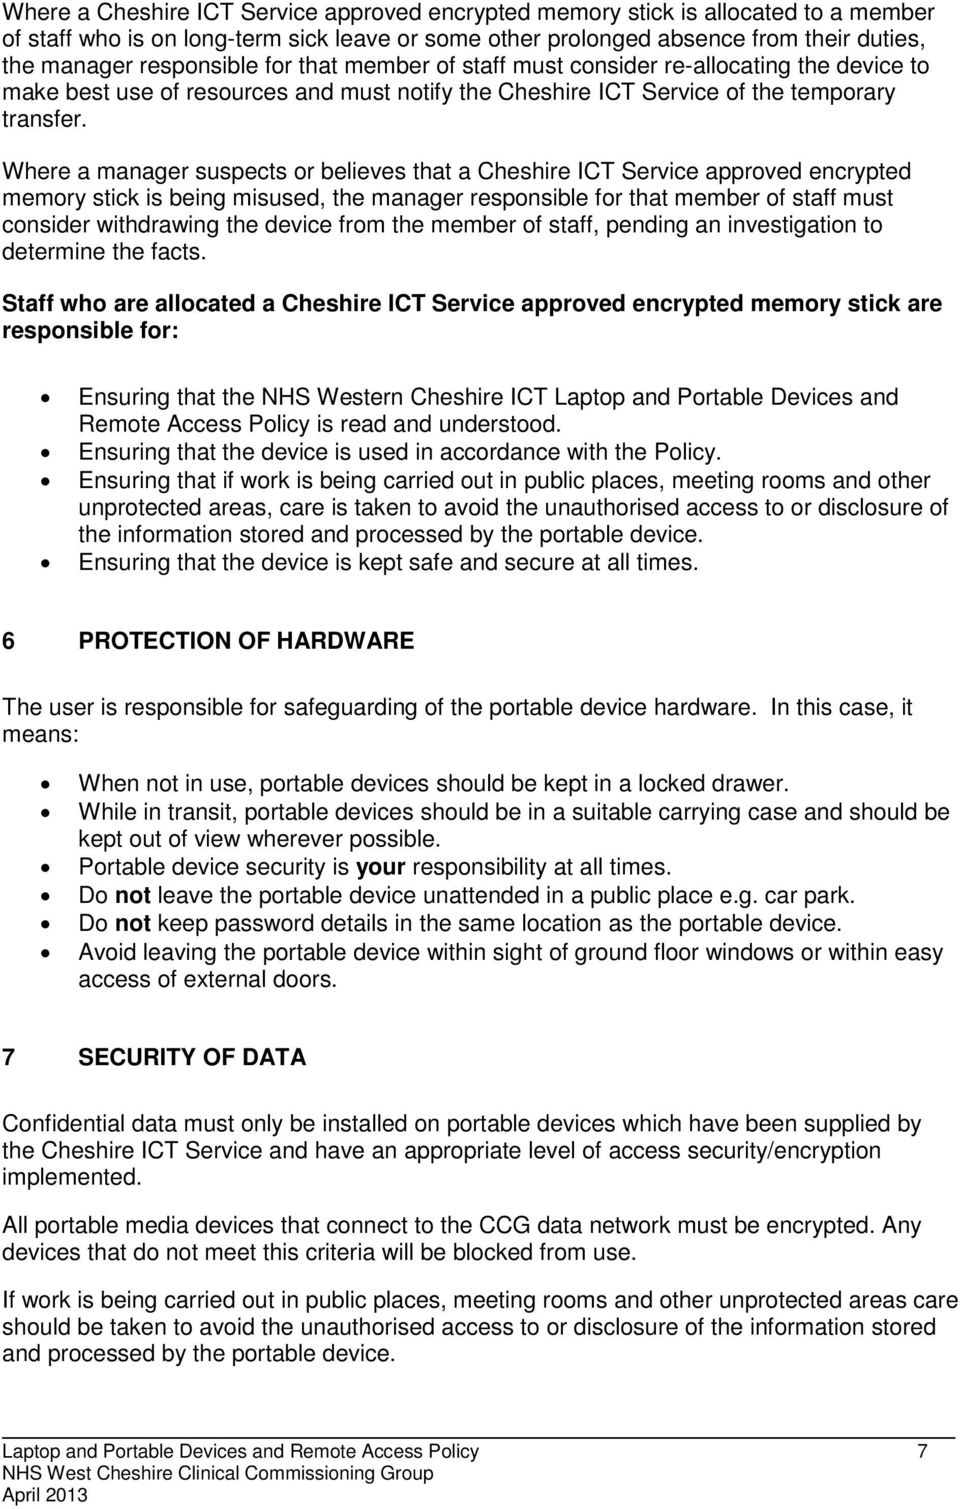 Where a manager suspects or believes that a Cheshire ICT Service approved encrypted memory stick is being misused, the manager responsible for that member of staff must consider withdrawing the